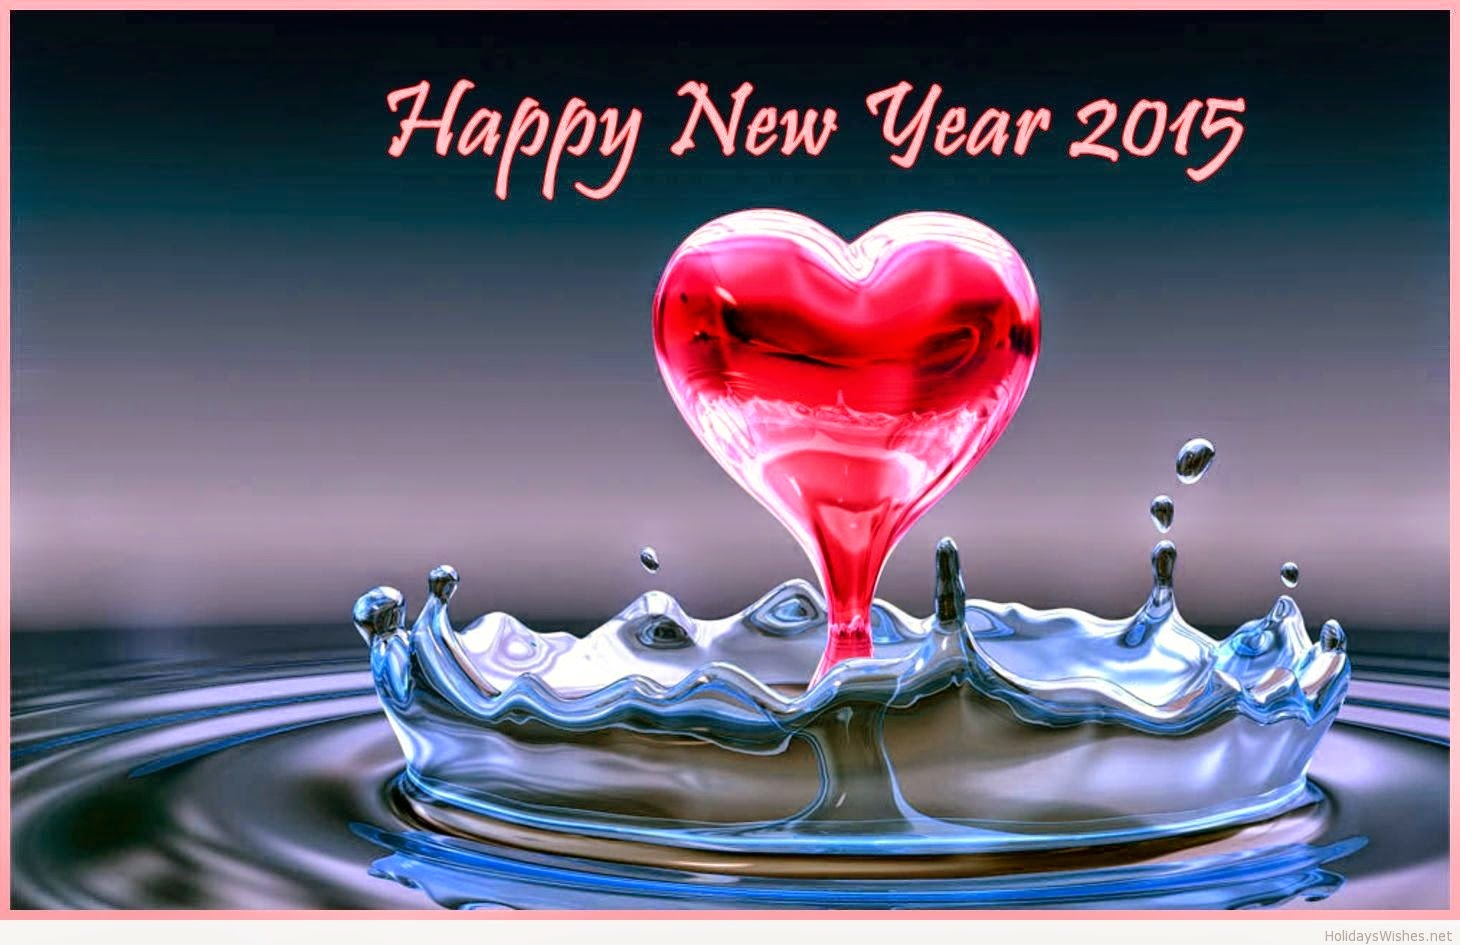 Romantic happy new year message for girlfriend best wishes messages romantic happy new year message for girlfriend kristyandbryce Gallery